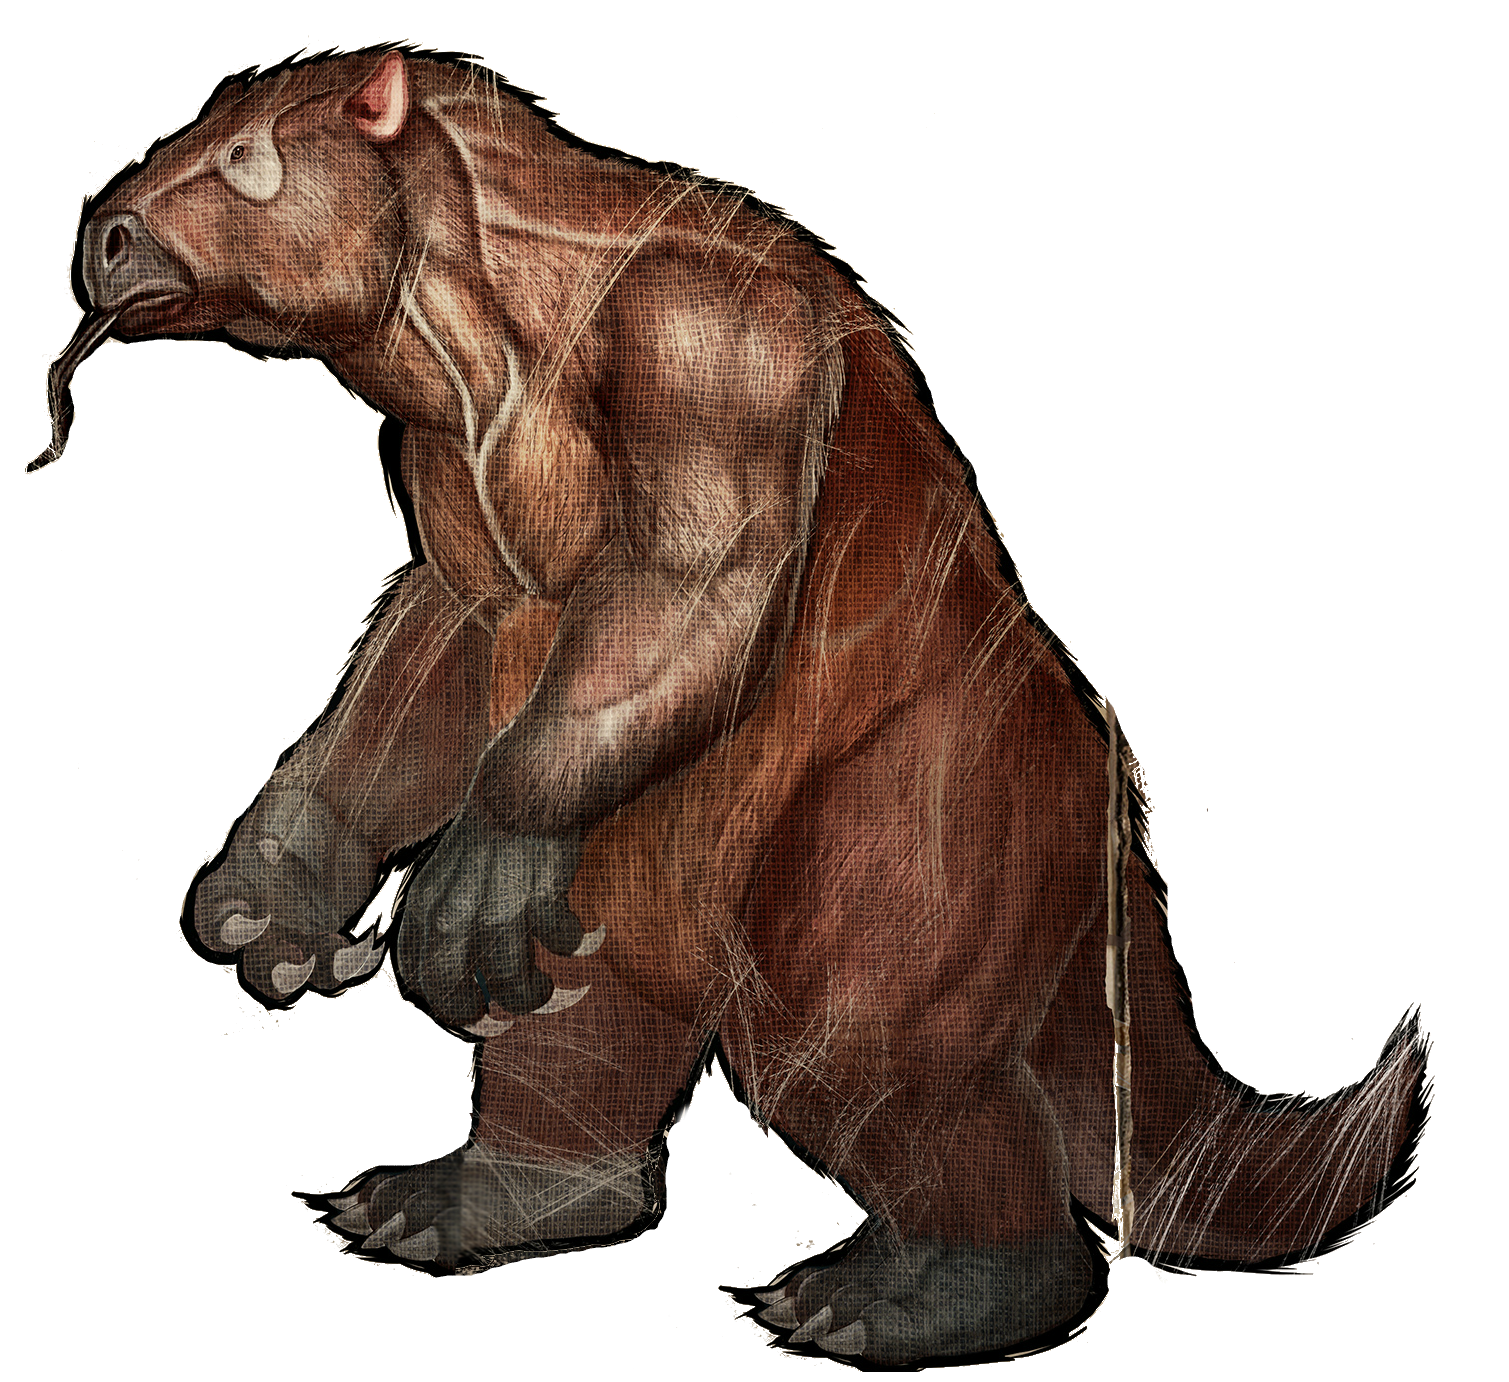 image megatherium wikia ark survival evolved fandom powered by wikia. Black Bedroom Furniture Sets. Home Design Ideas